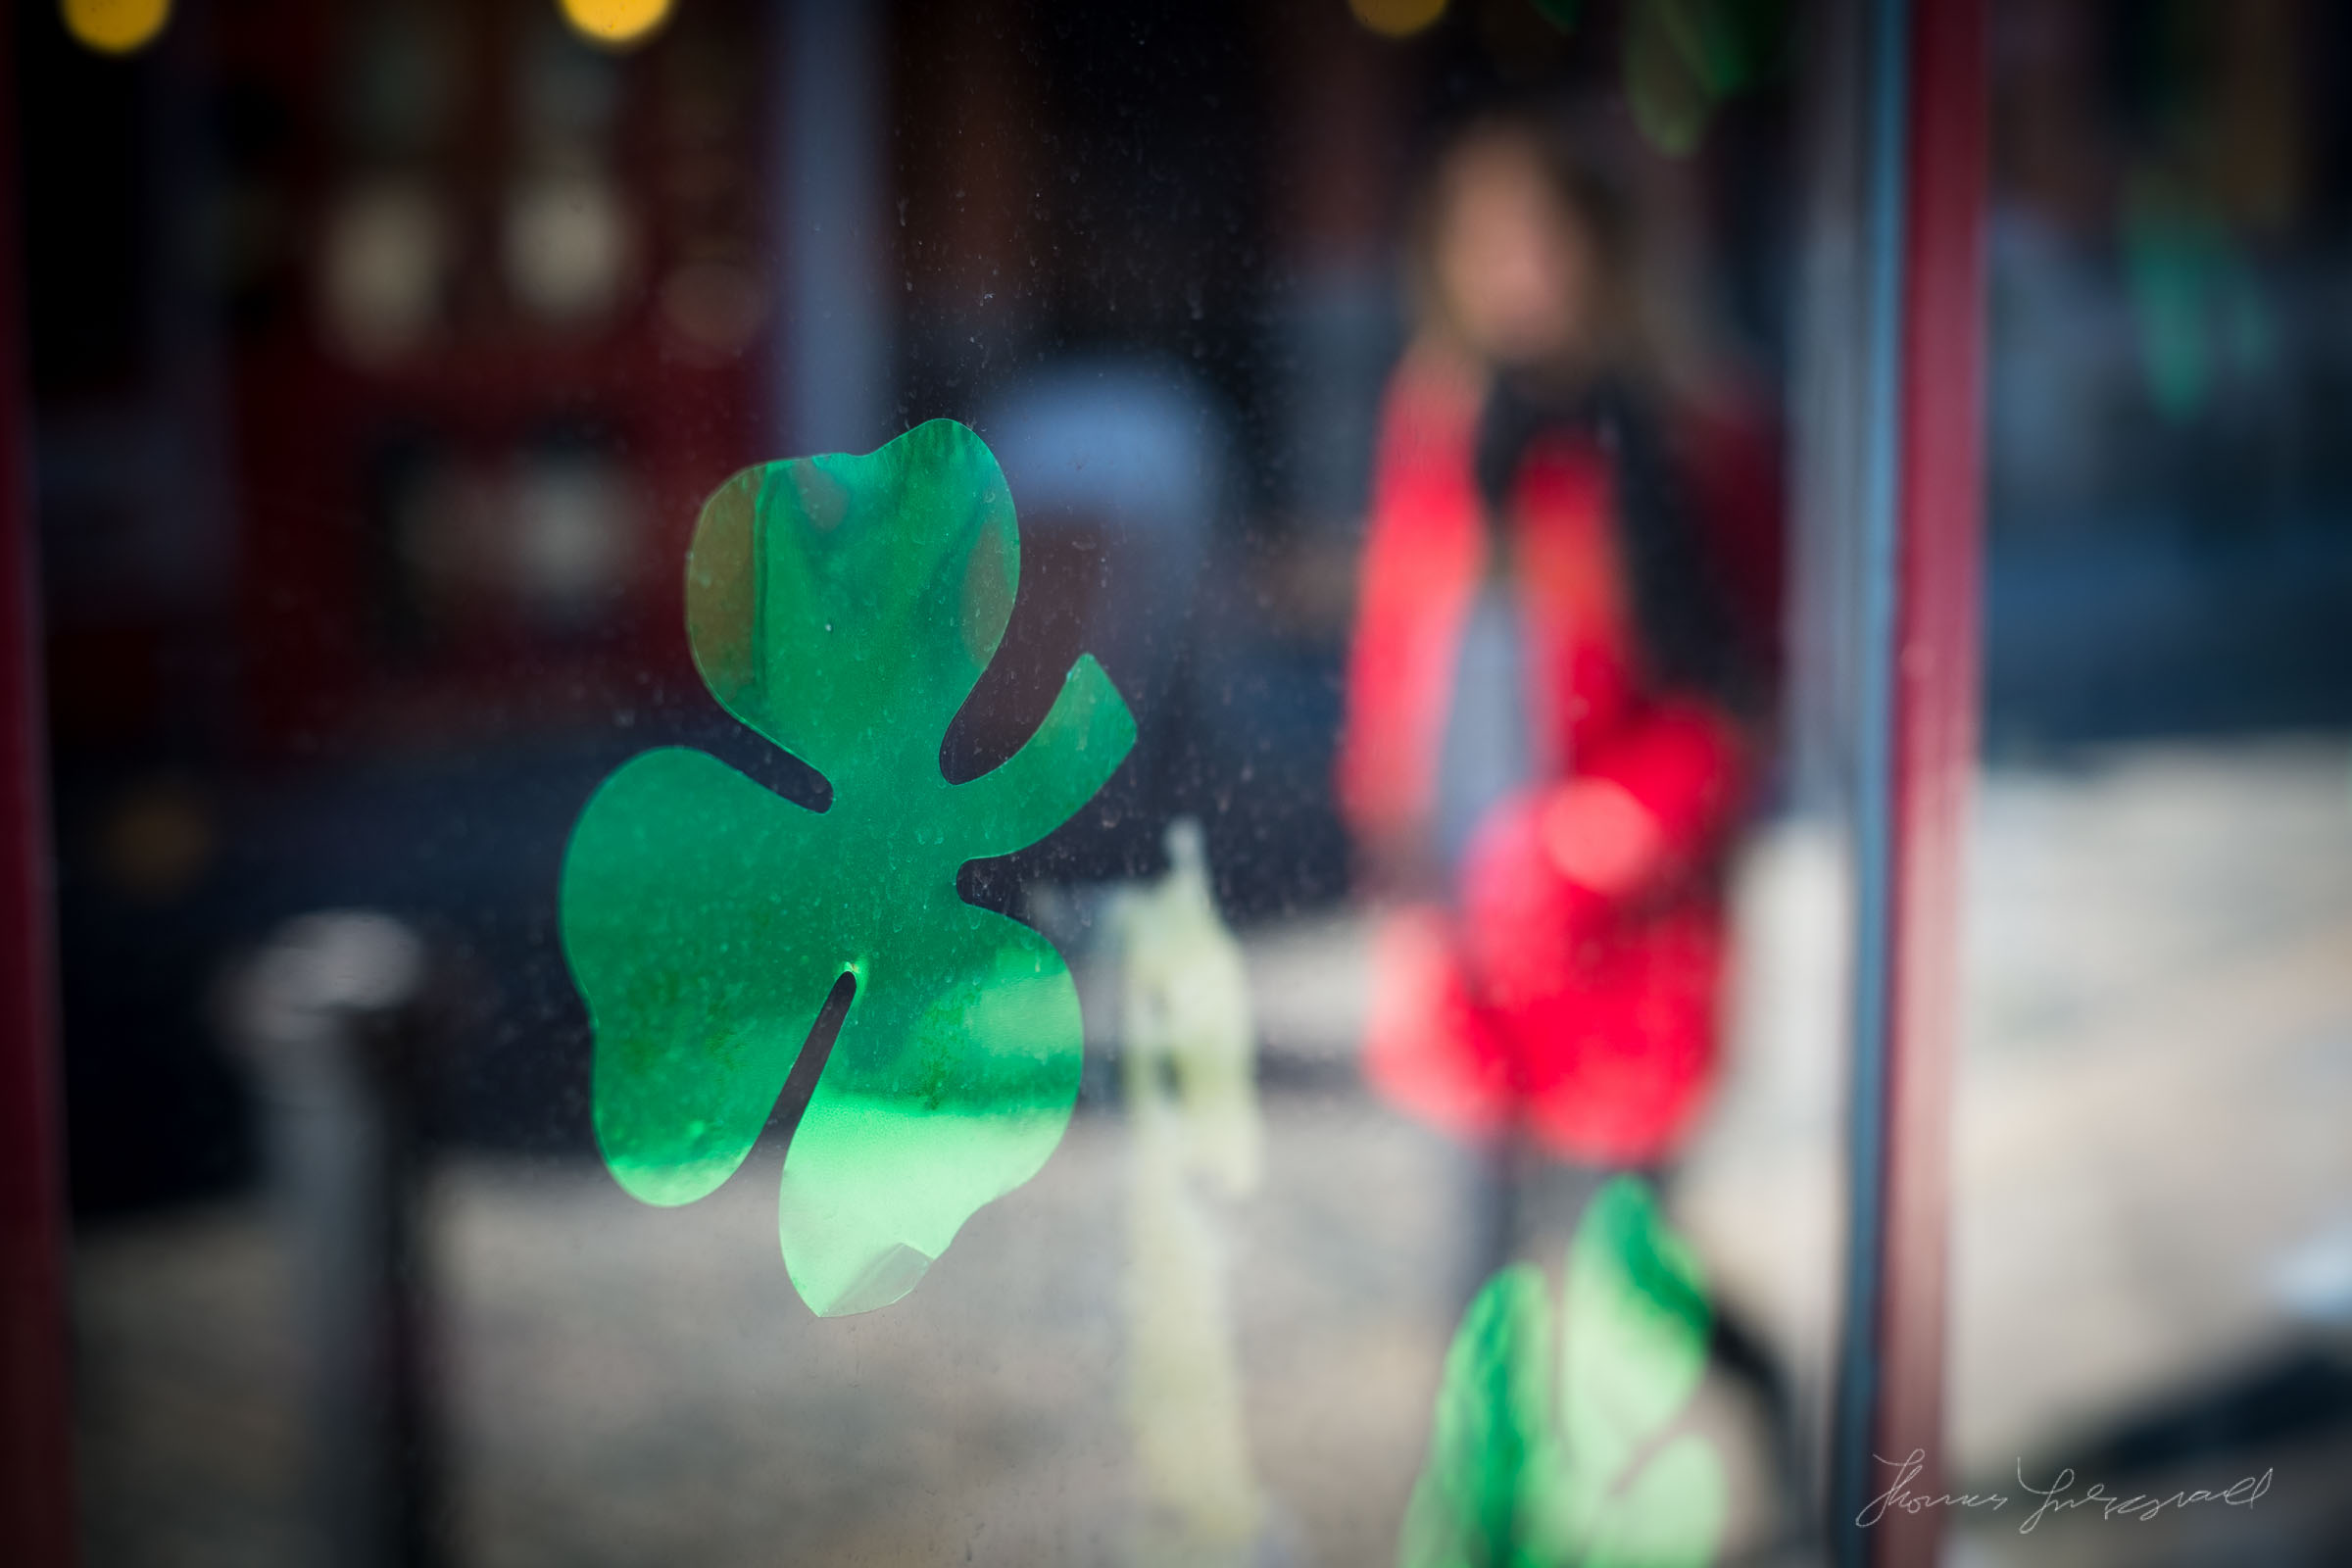 A Random Shamrock in a window!